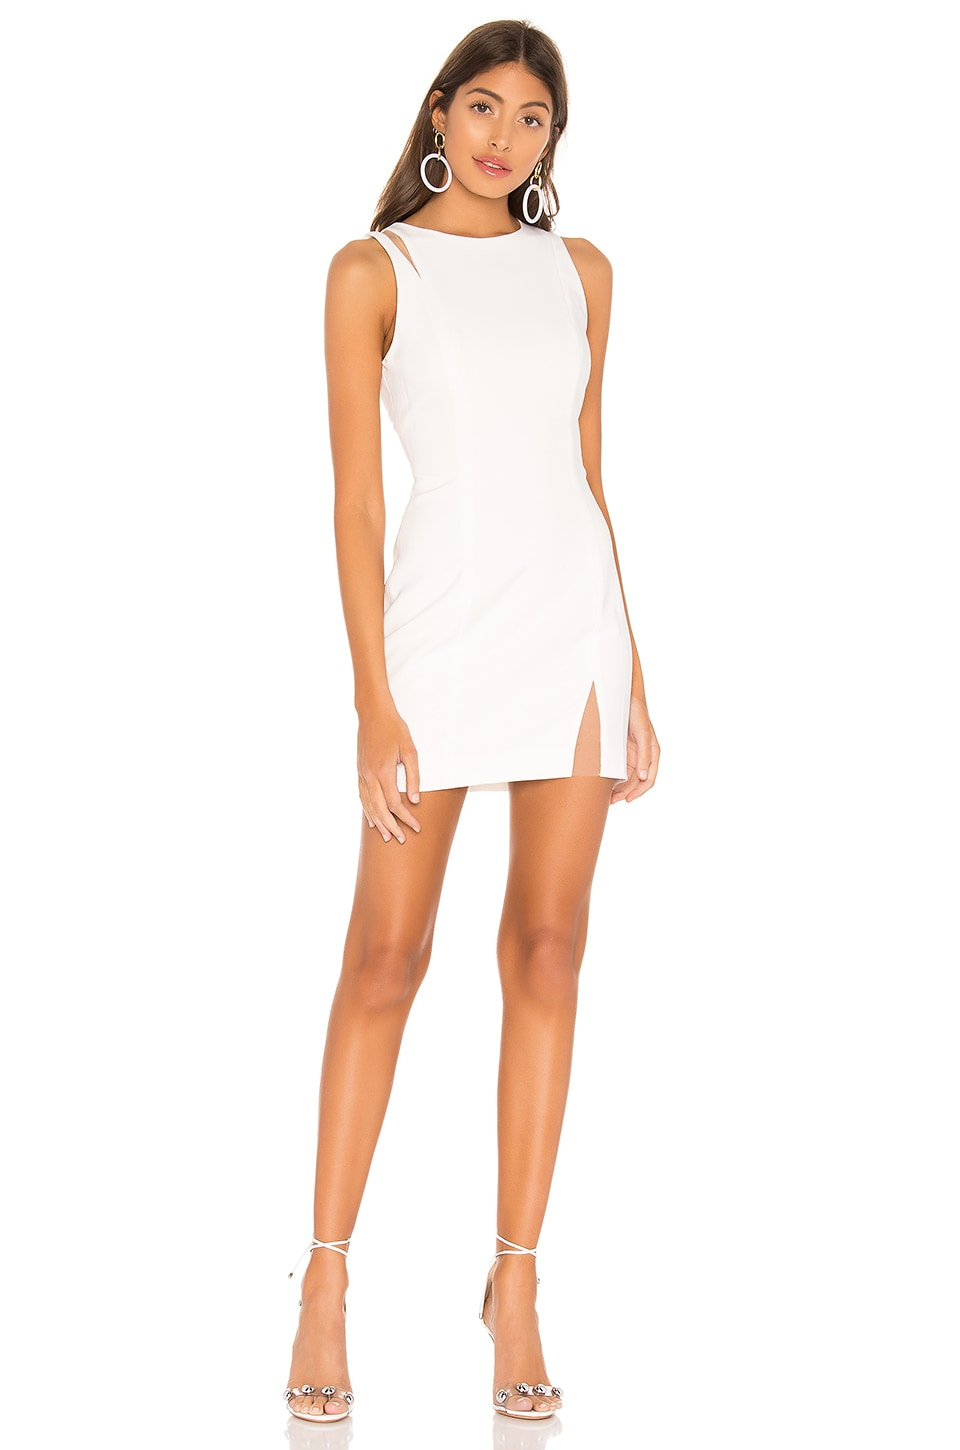 Mulan Mini Dress             NBD                                                                                                       CA$ 267.30 2